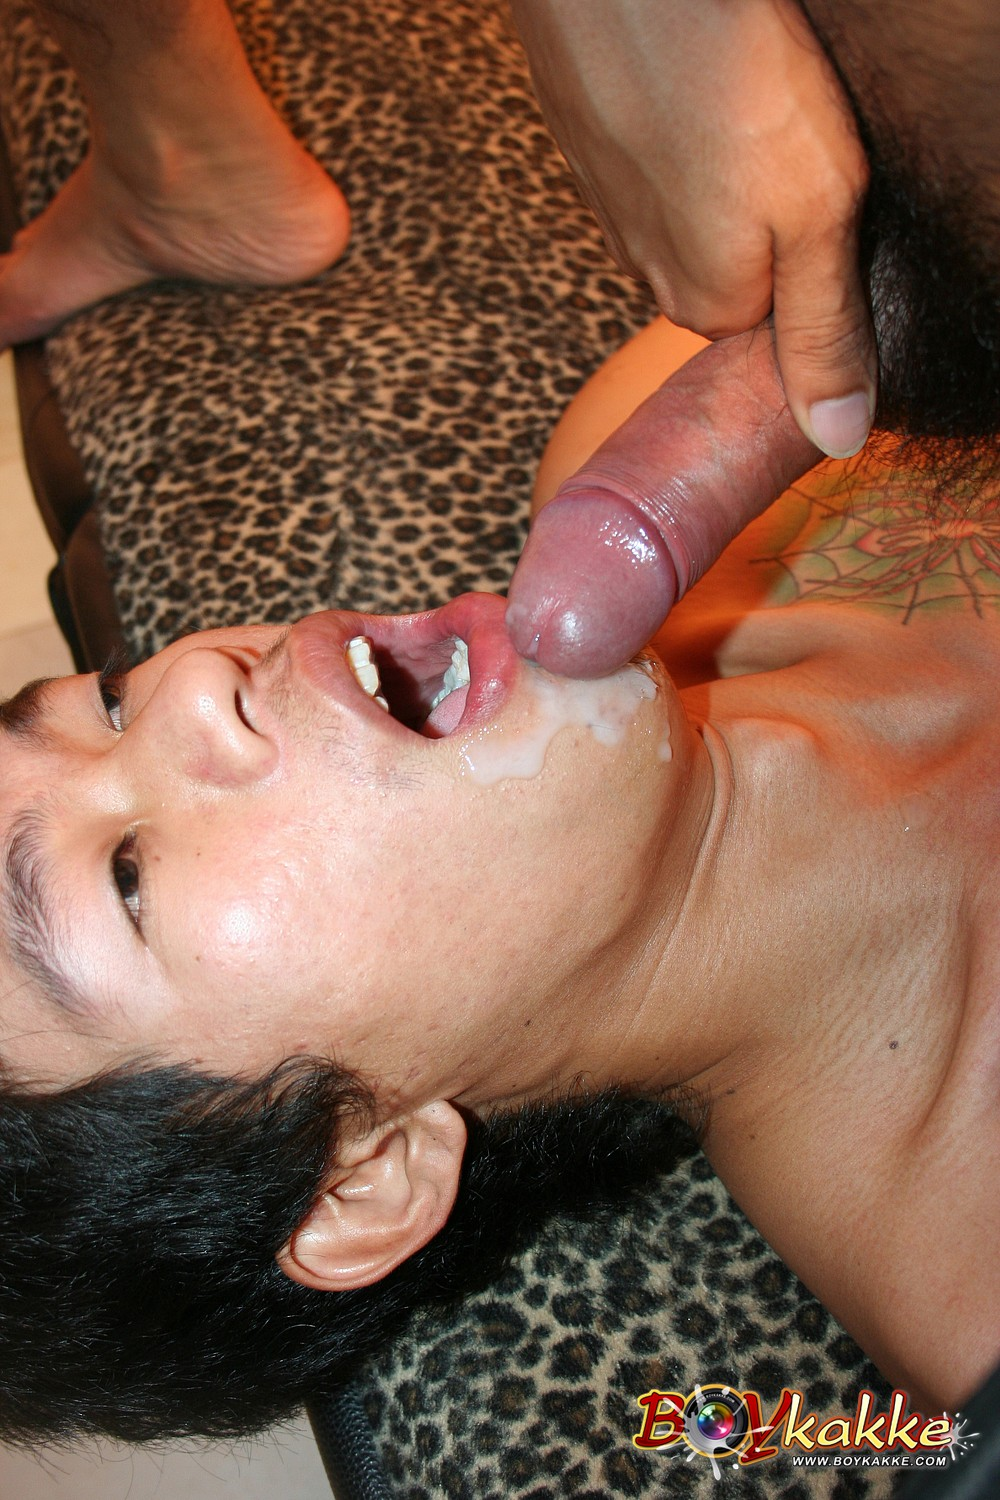 Boykakke-Big-Cum-Neck-Fongenee-Nut-Lakdee17 Amateur Asian Twinks Fuck and Eat Each Others Cum